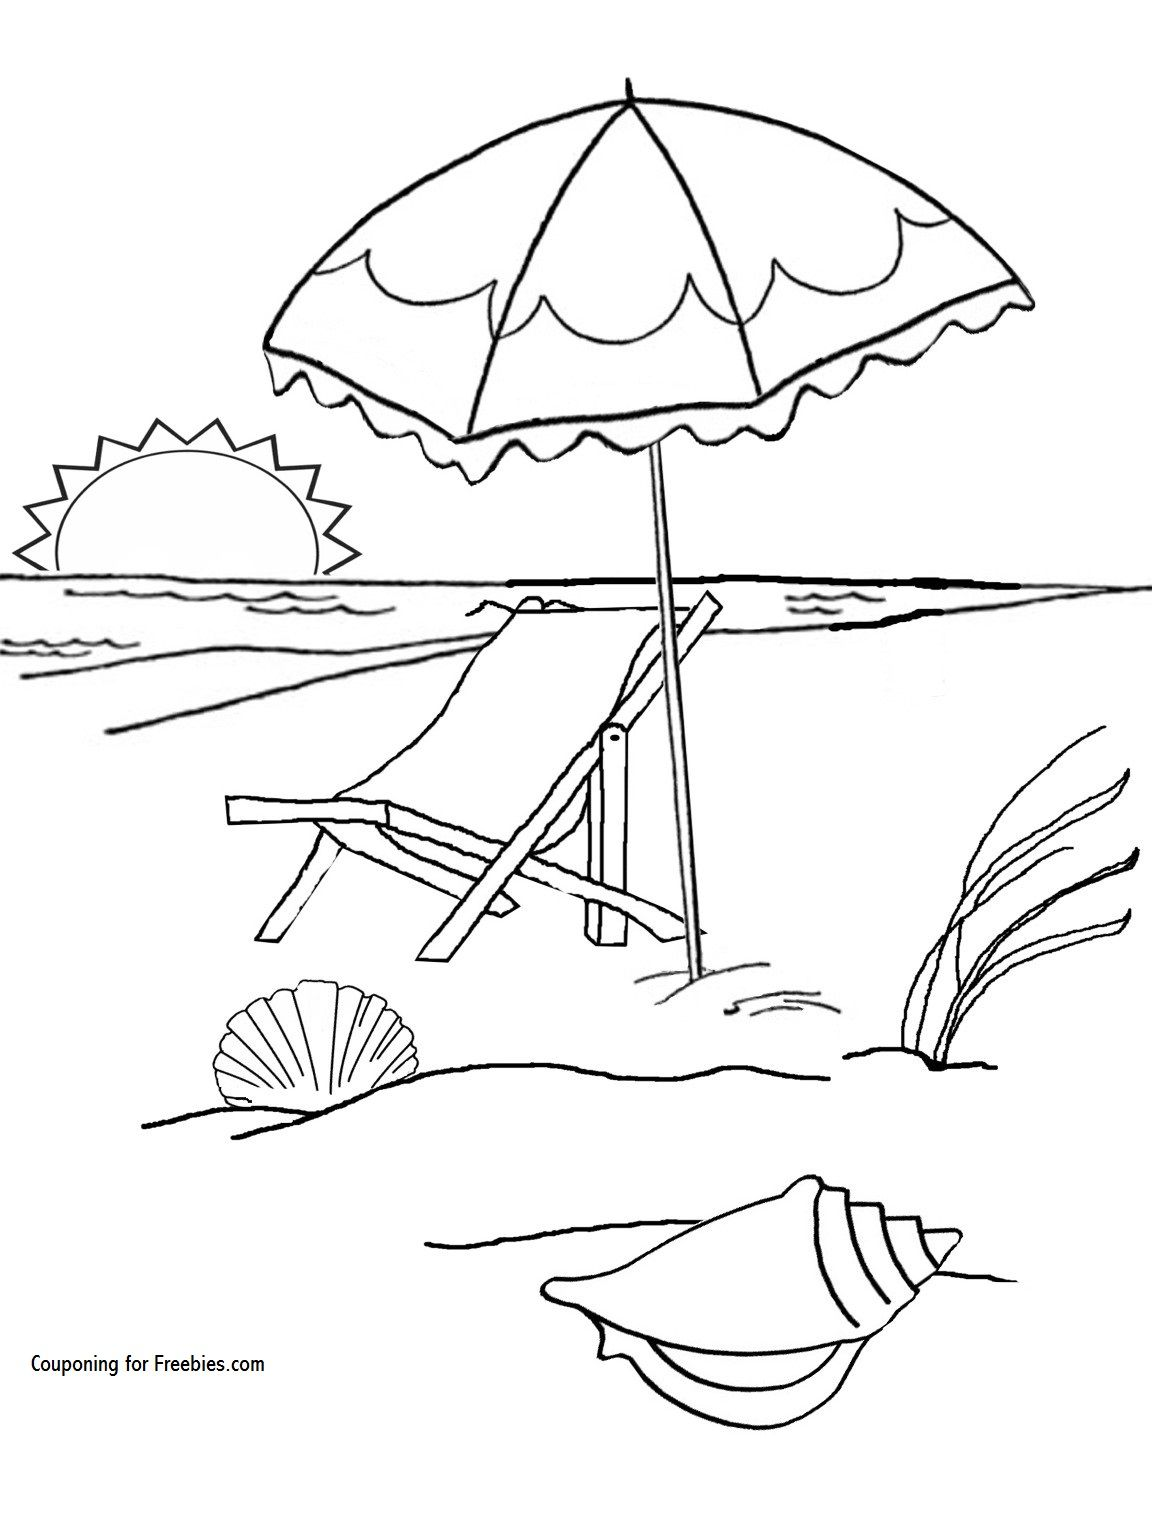 Free Summer At The Beach Coloring Page Http Couponingforfreebies Com Free Summer At The Bea Beach Coloring Pages Cool Coloring Pages Summer Coloring Pages